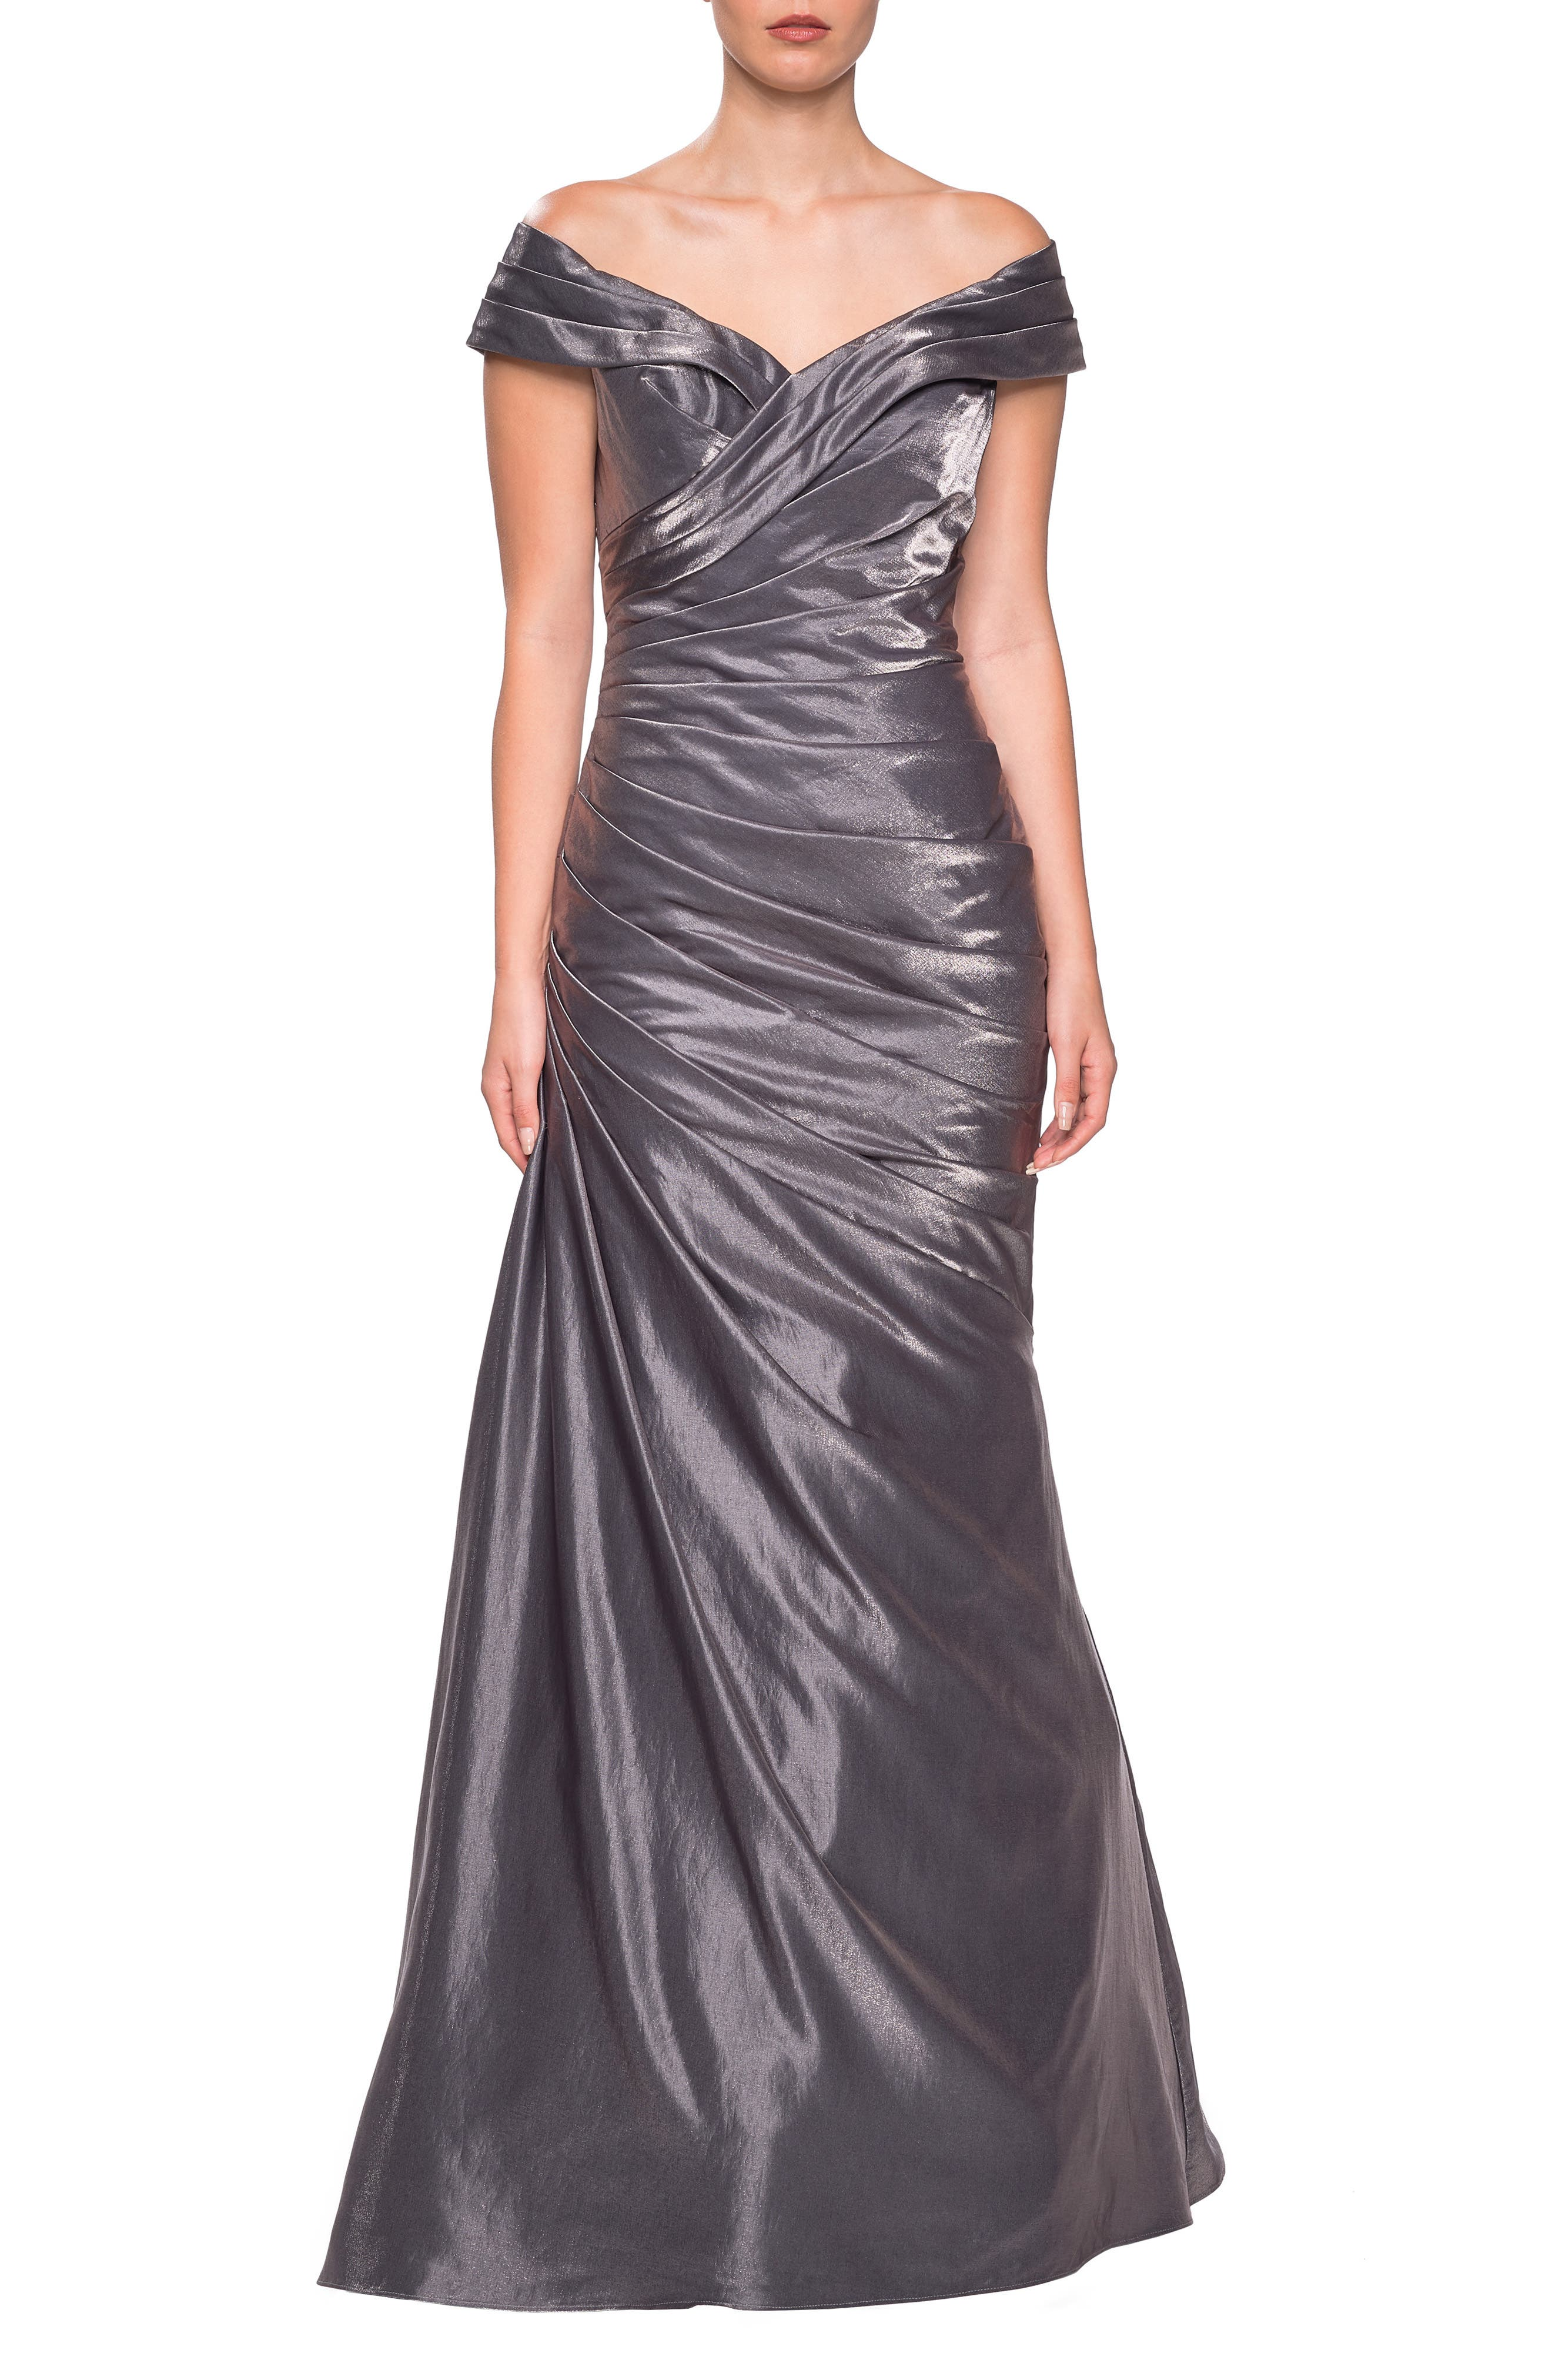 La Femme Ruched Two-Tone Satin Gown, Grey